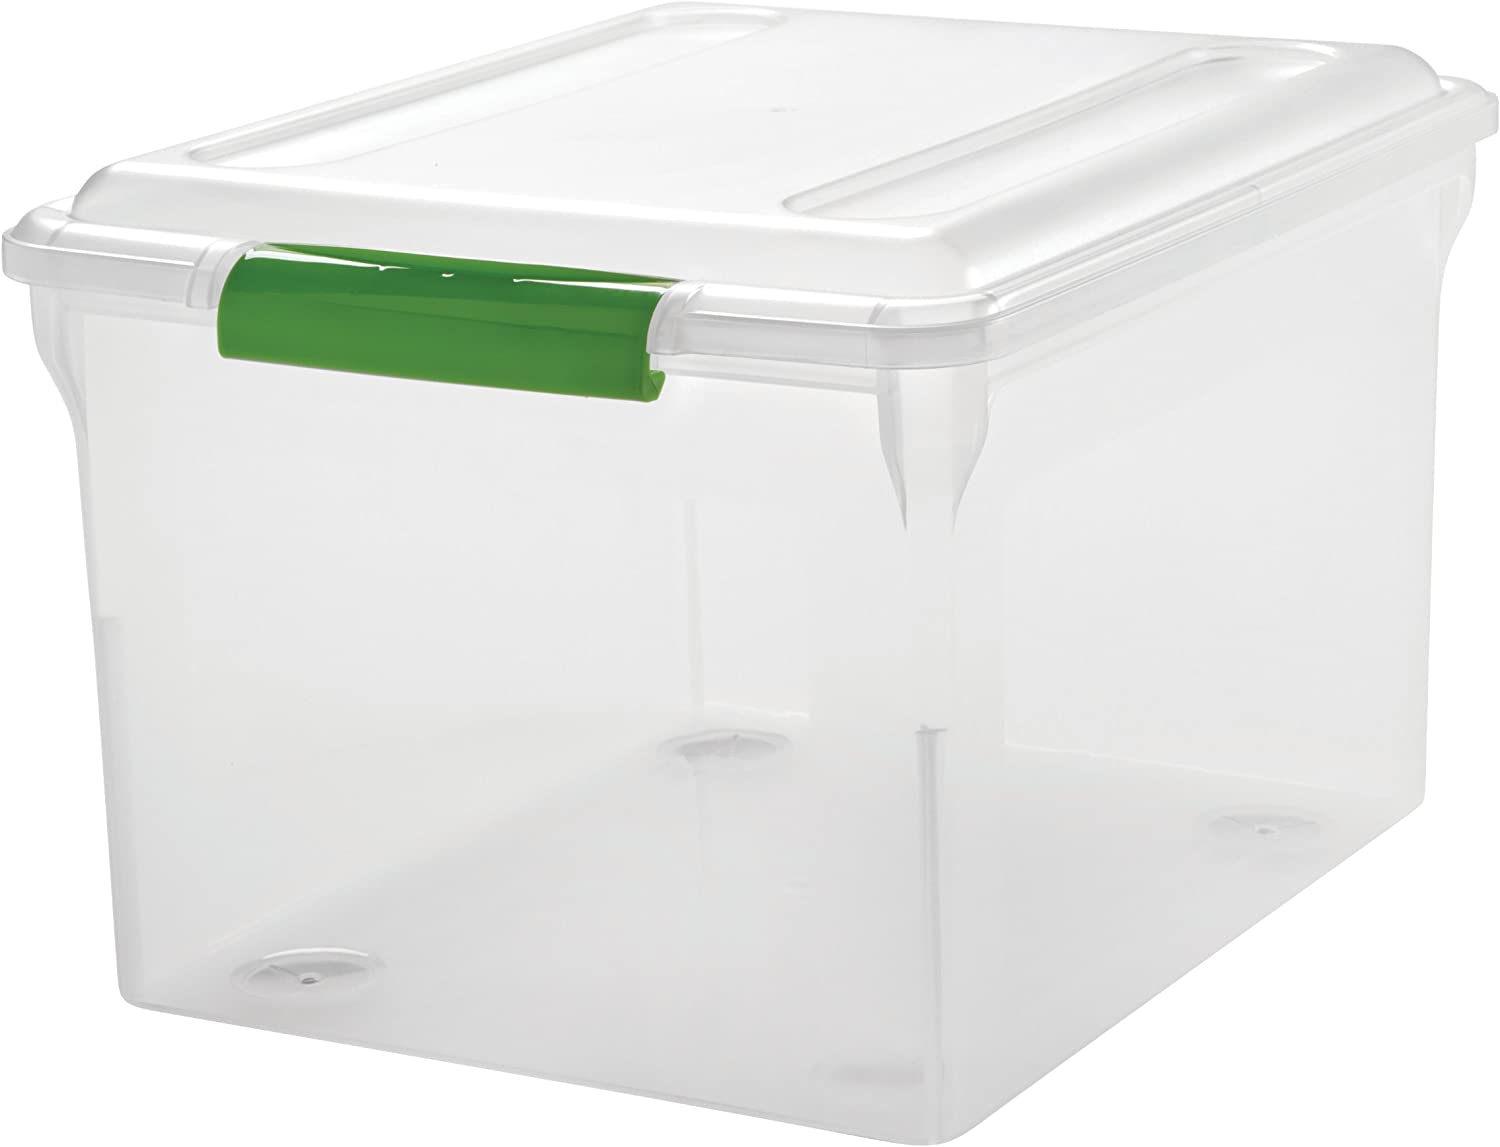 IRIS Store and Slide Letter and Legal Size File Box, 4 Pack, Green Handle, Clear